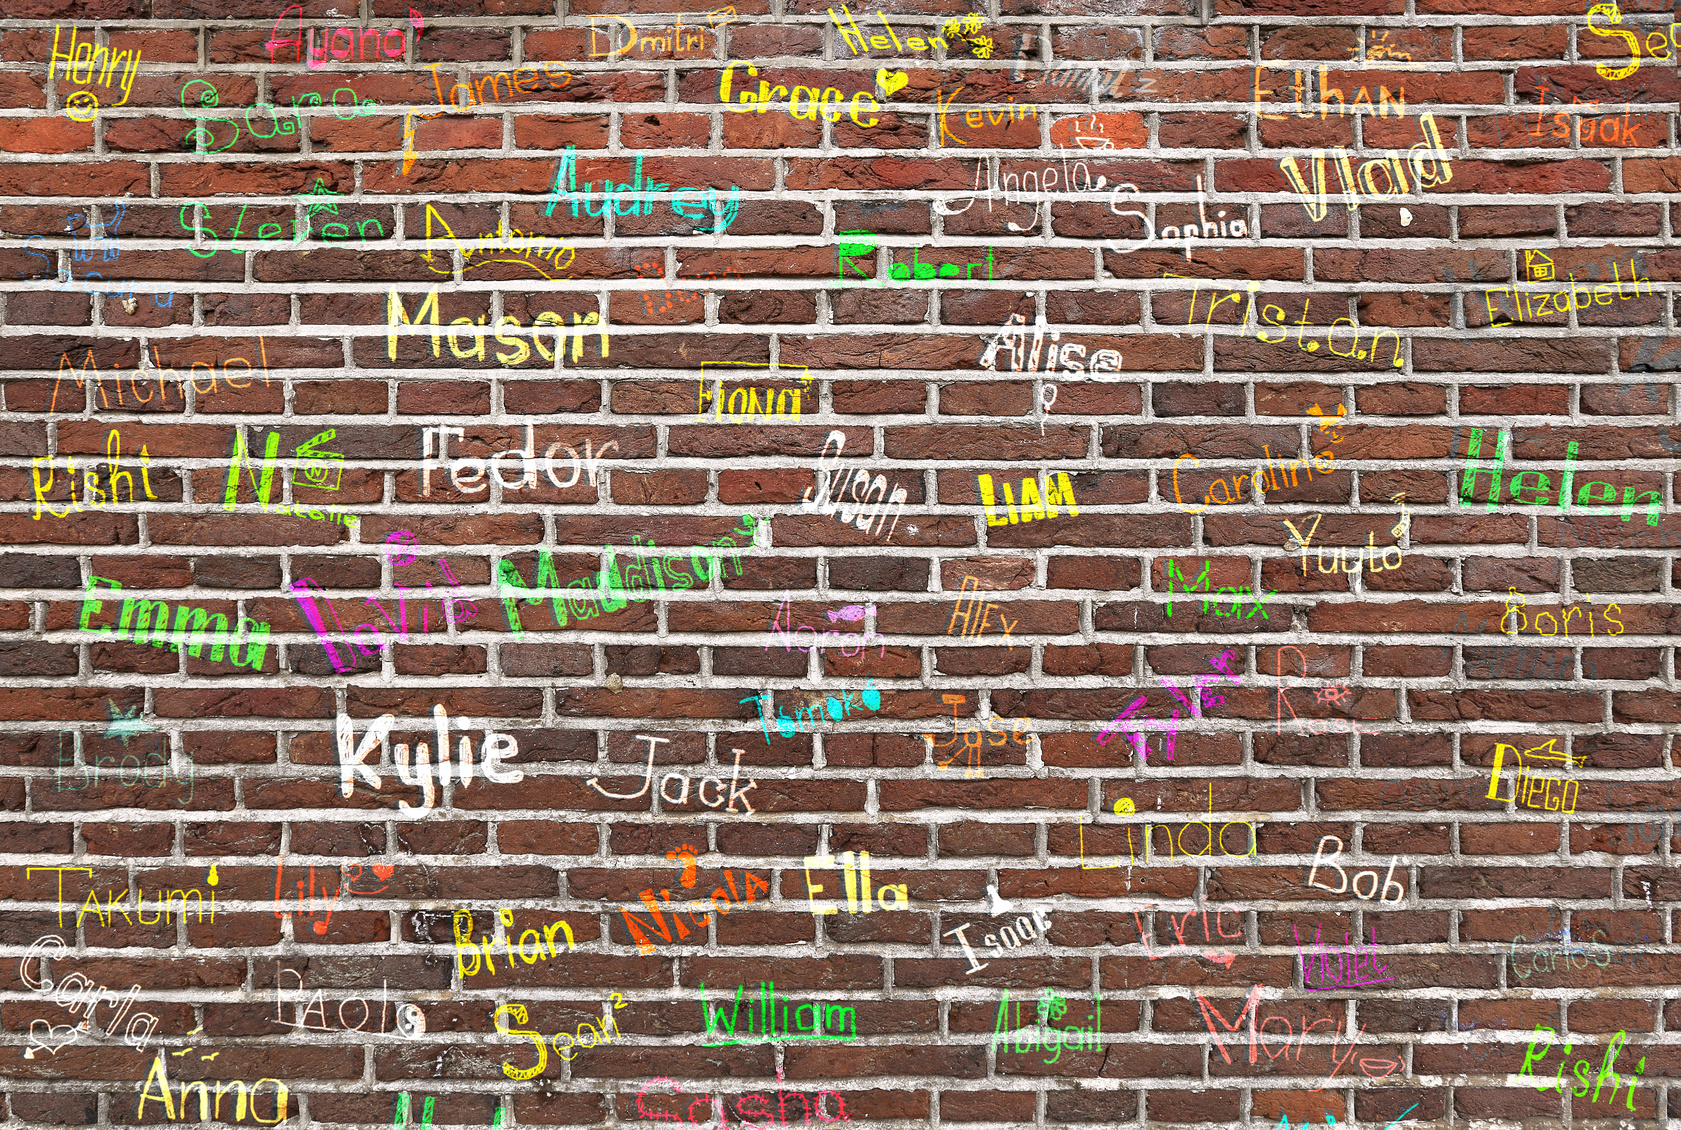 hildren's names written on a brick wall